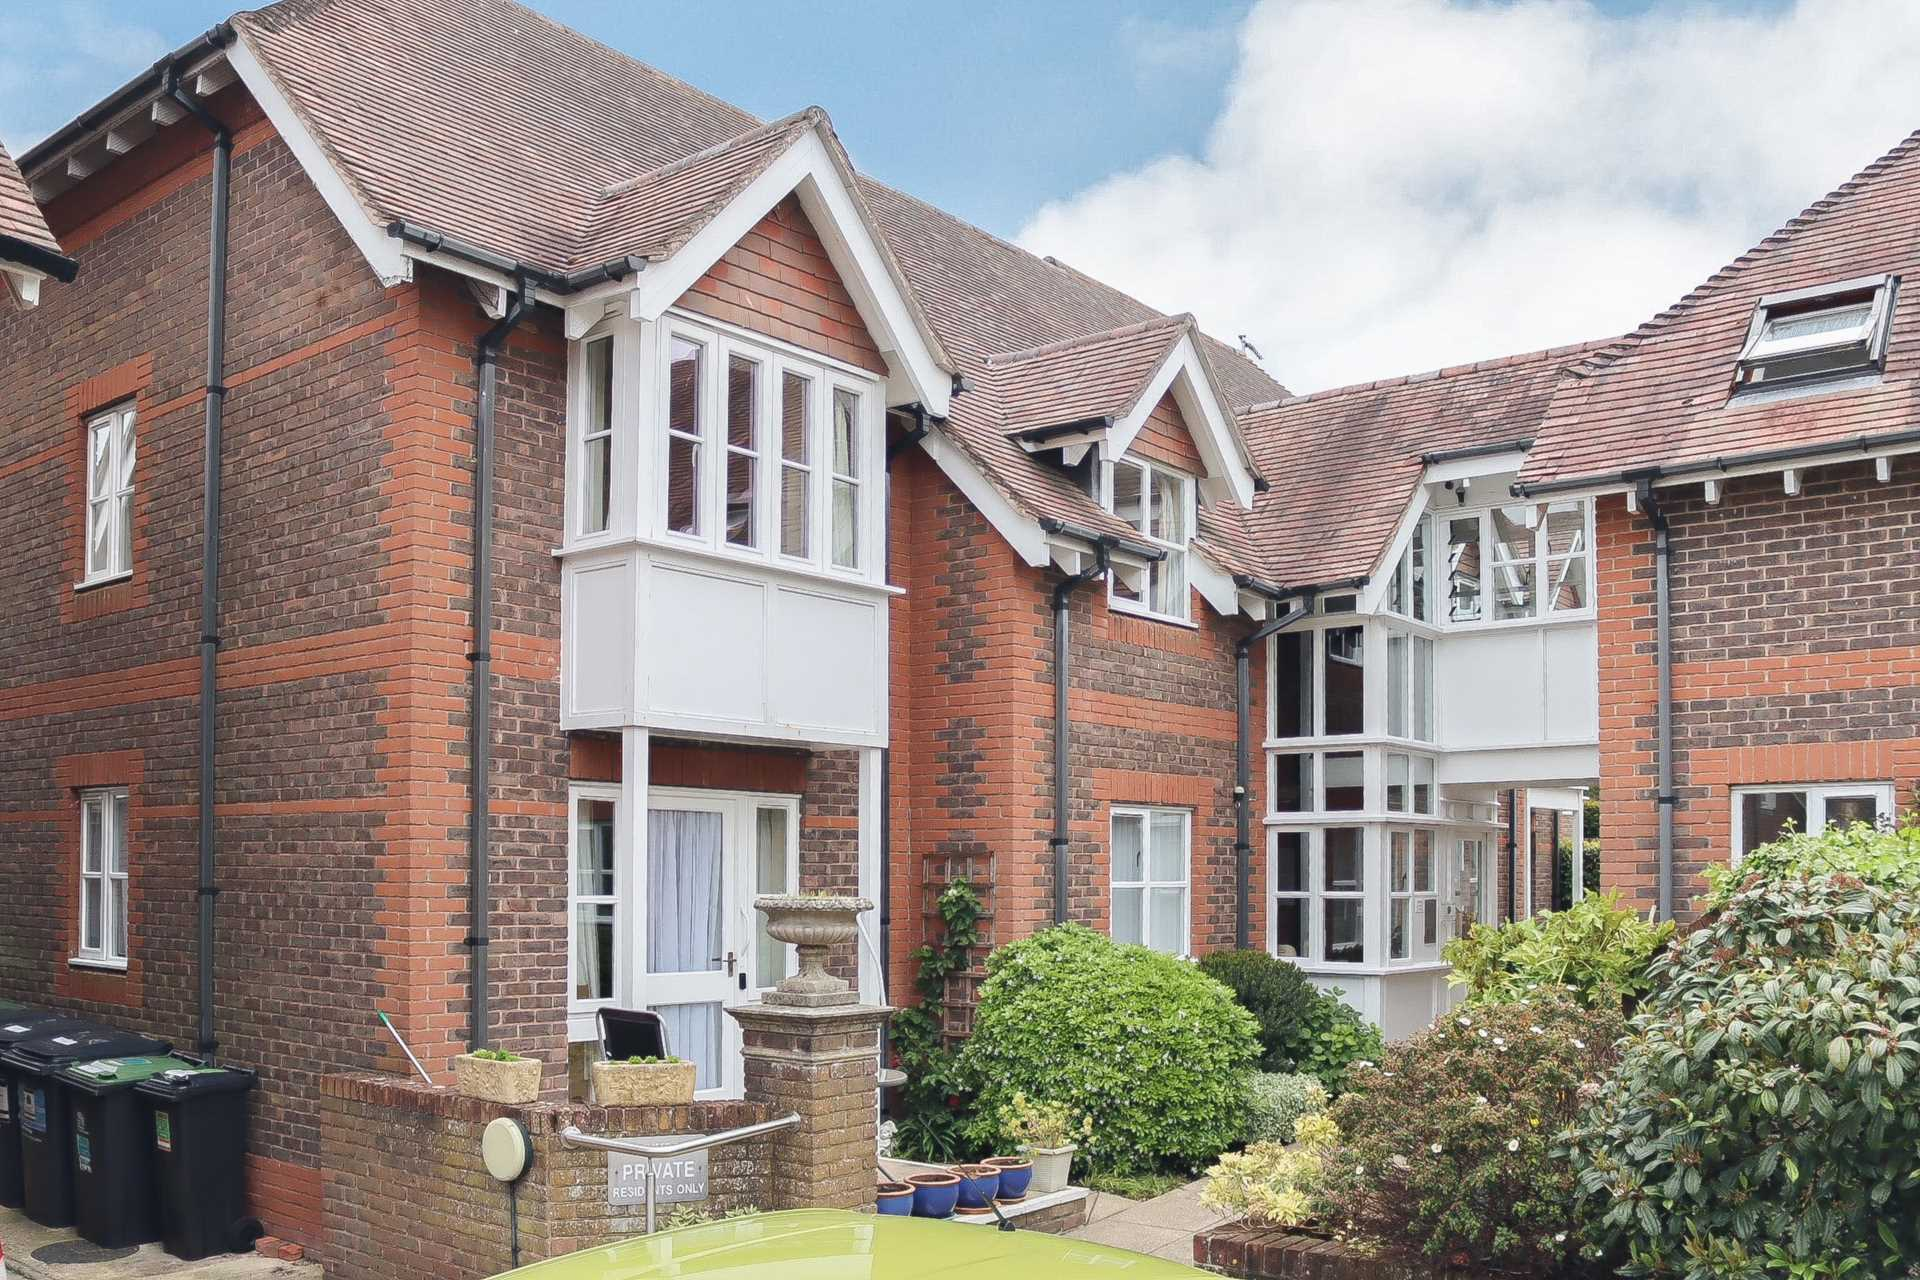 2 bed retirement property for sale in Whitecliffe Court, Blandford Forum, Blandford Forum - Property Image 1